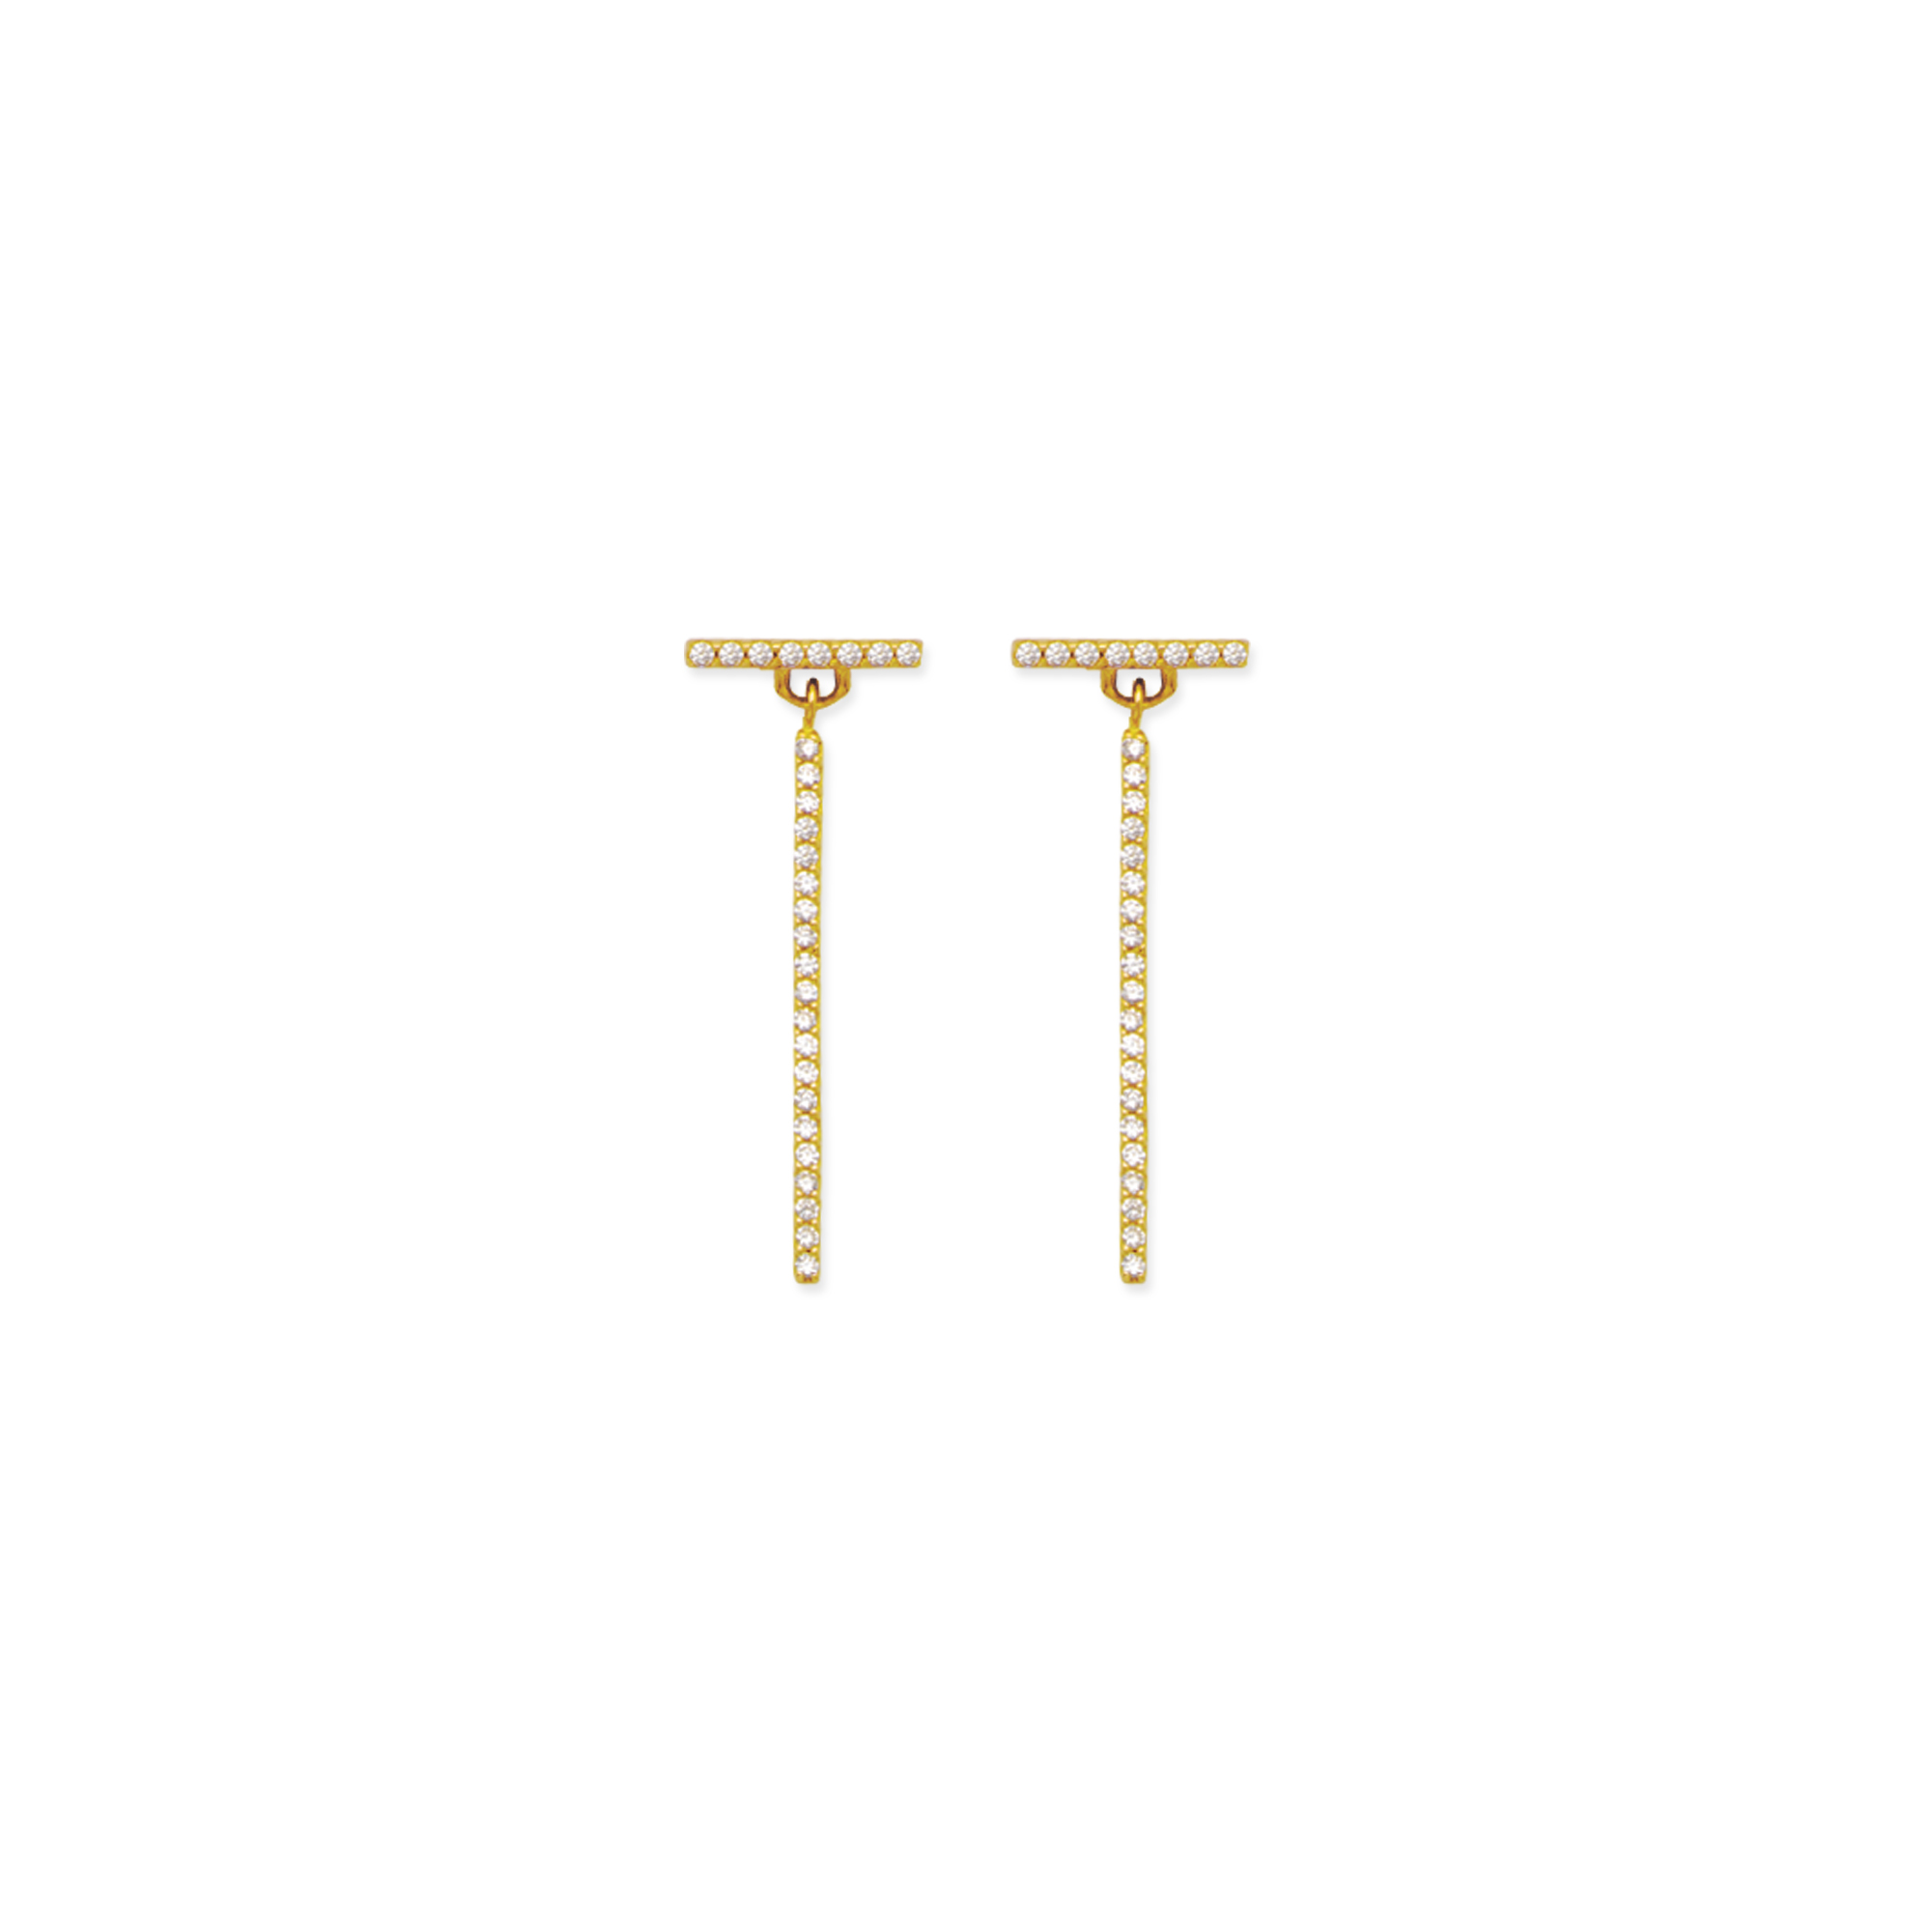 Bar Earrings, 14Kt Gold Cz L Bar Earring